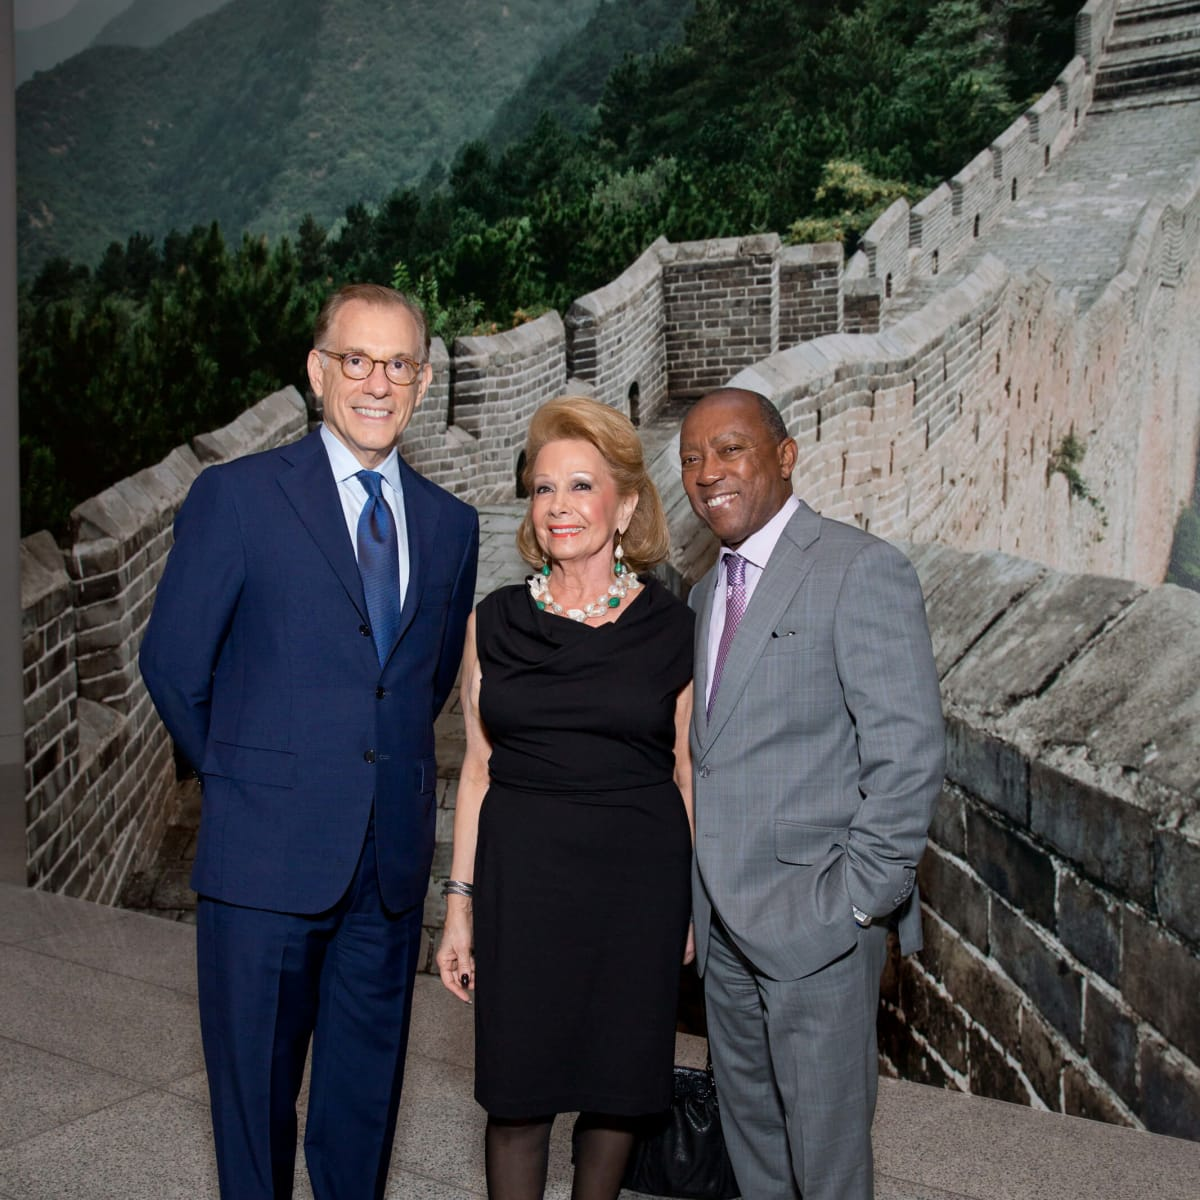 MFAH Emperors Treasures dinner, Gary Tinterow, Philamena Baird, Mayor Sylvester Turner